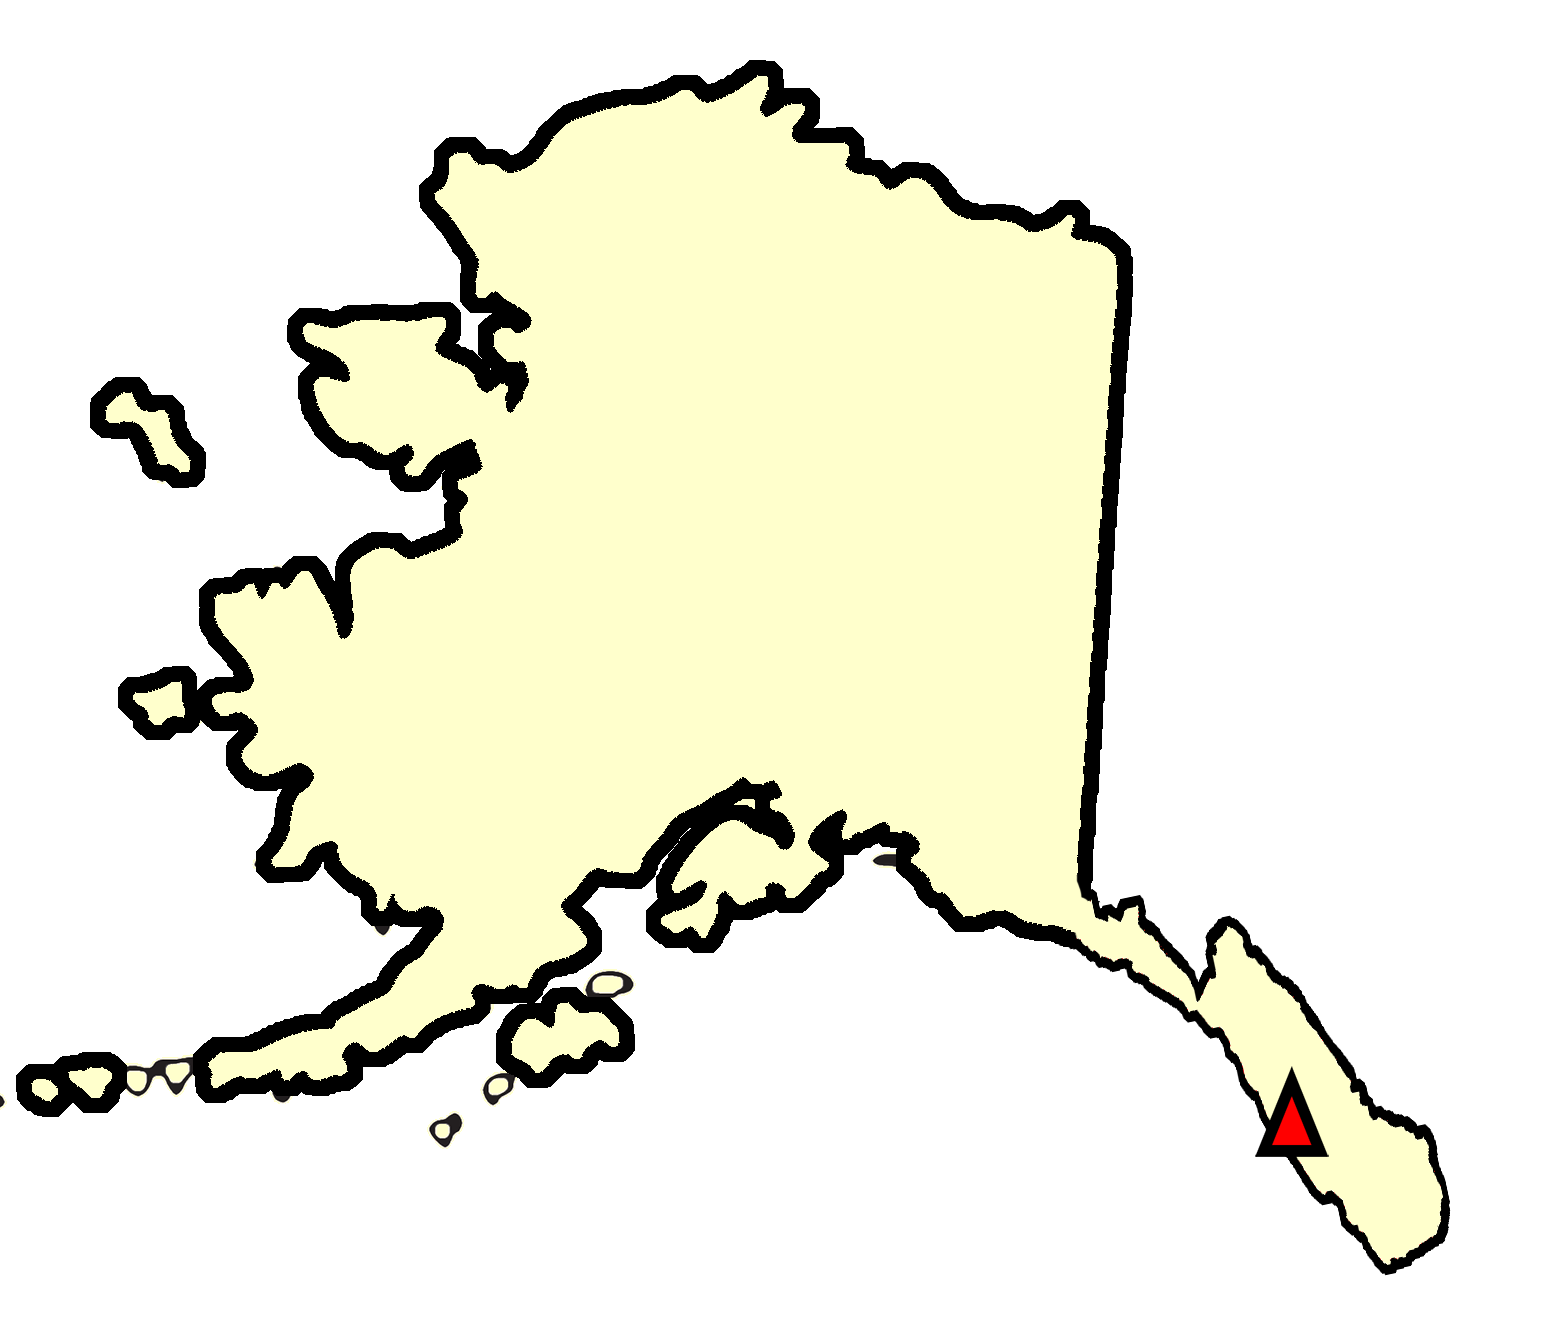 State map location for AK Sitka